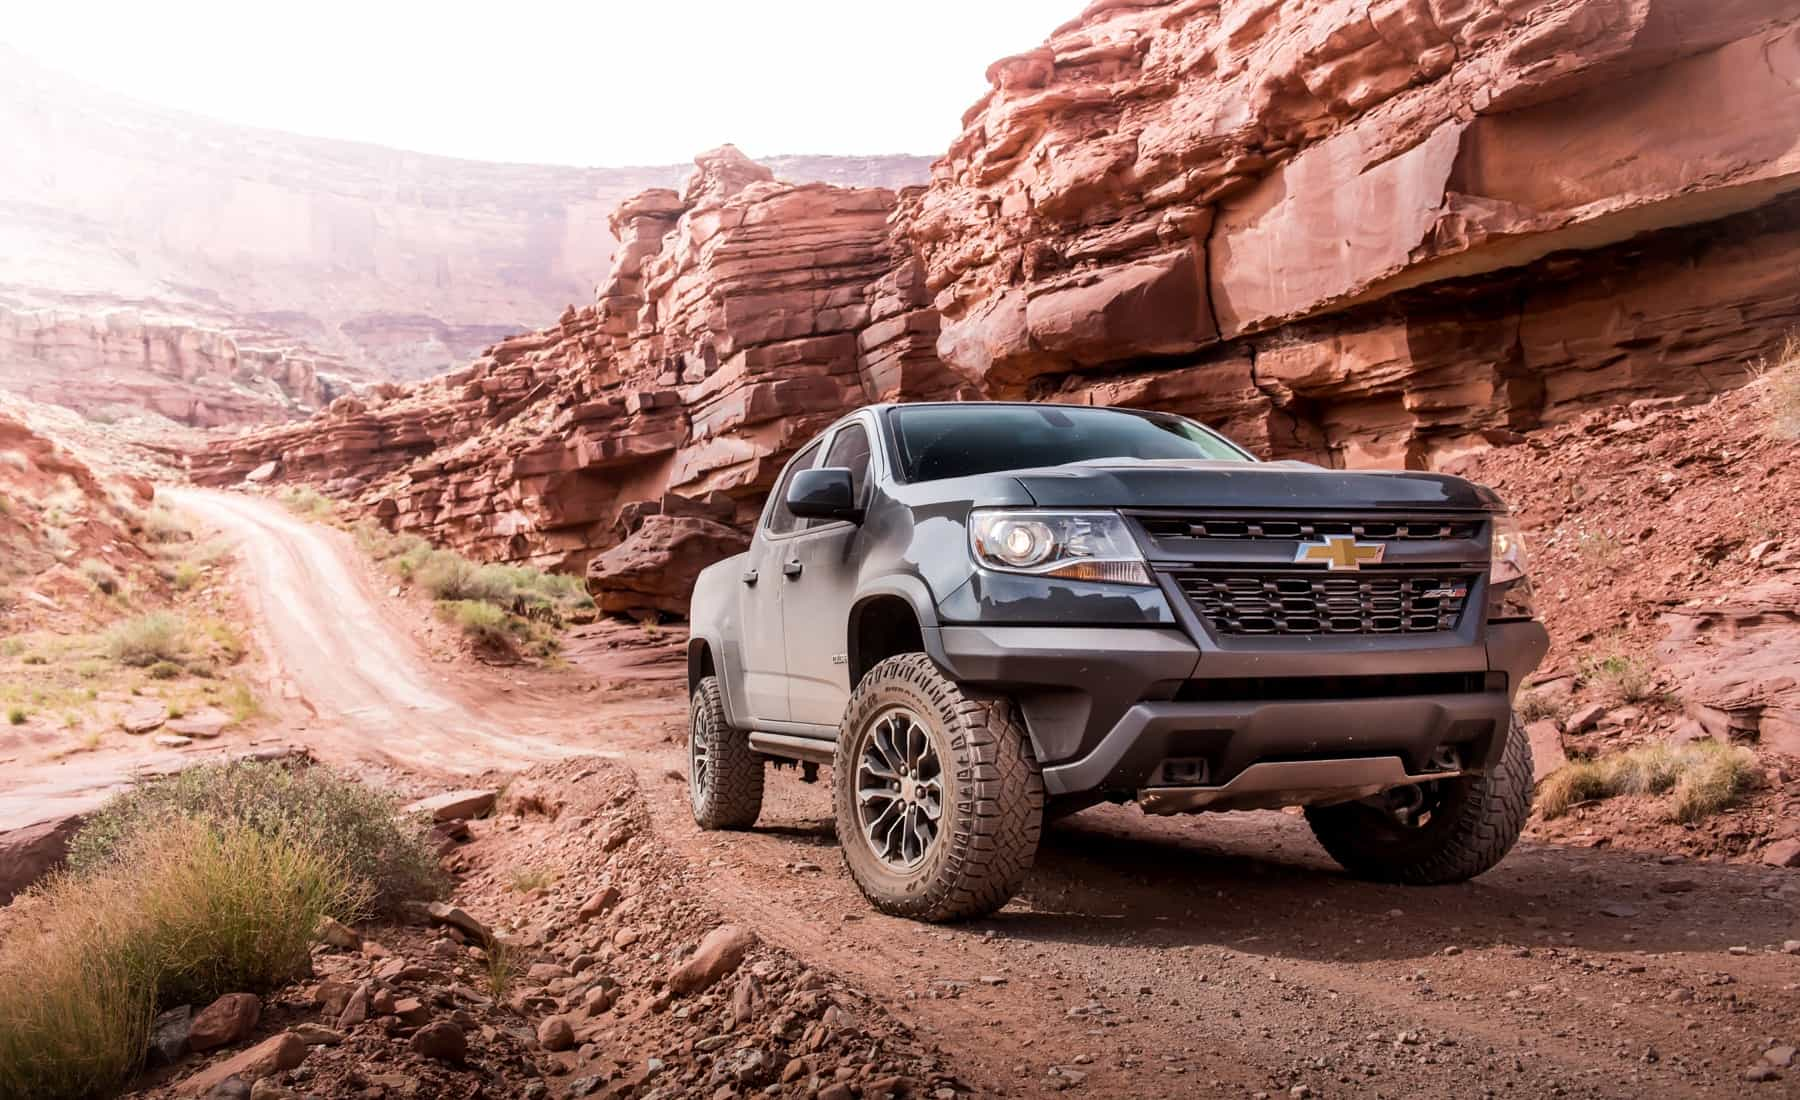 2017 Chevrolet Colorado ZR2 Crew Cab Diesel Exterior Front And Side (Photo 16 of 16)